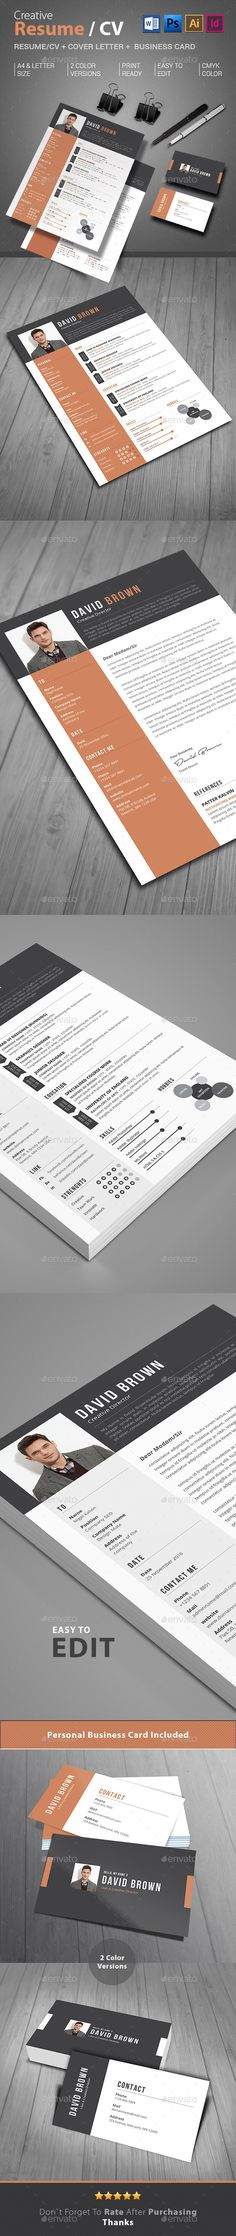 457 best Infographic/Visual Graphic Resume images on Pinterest